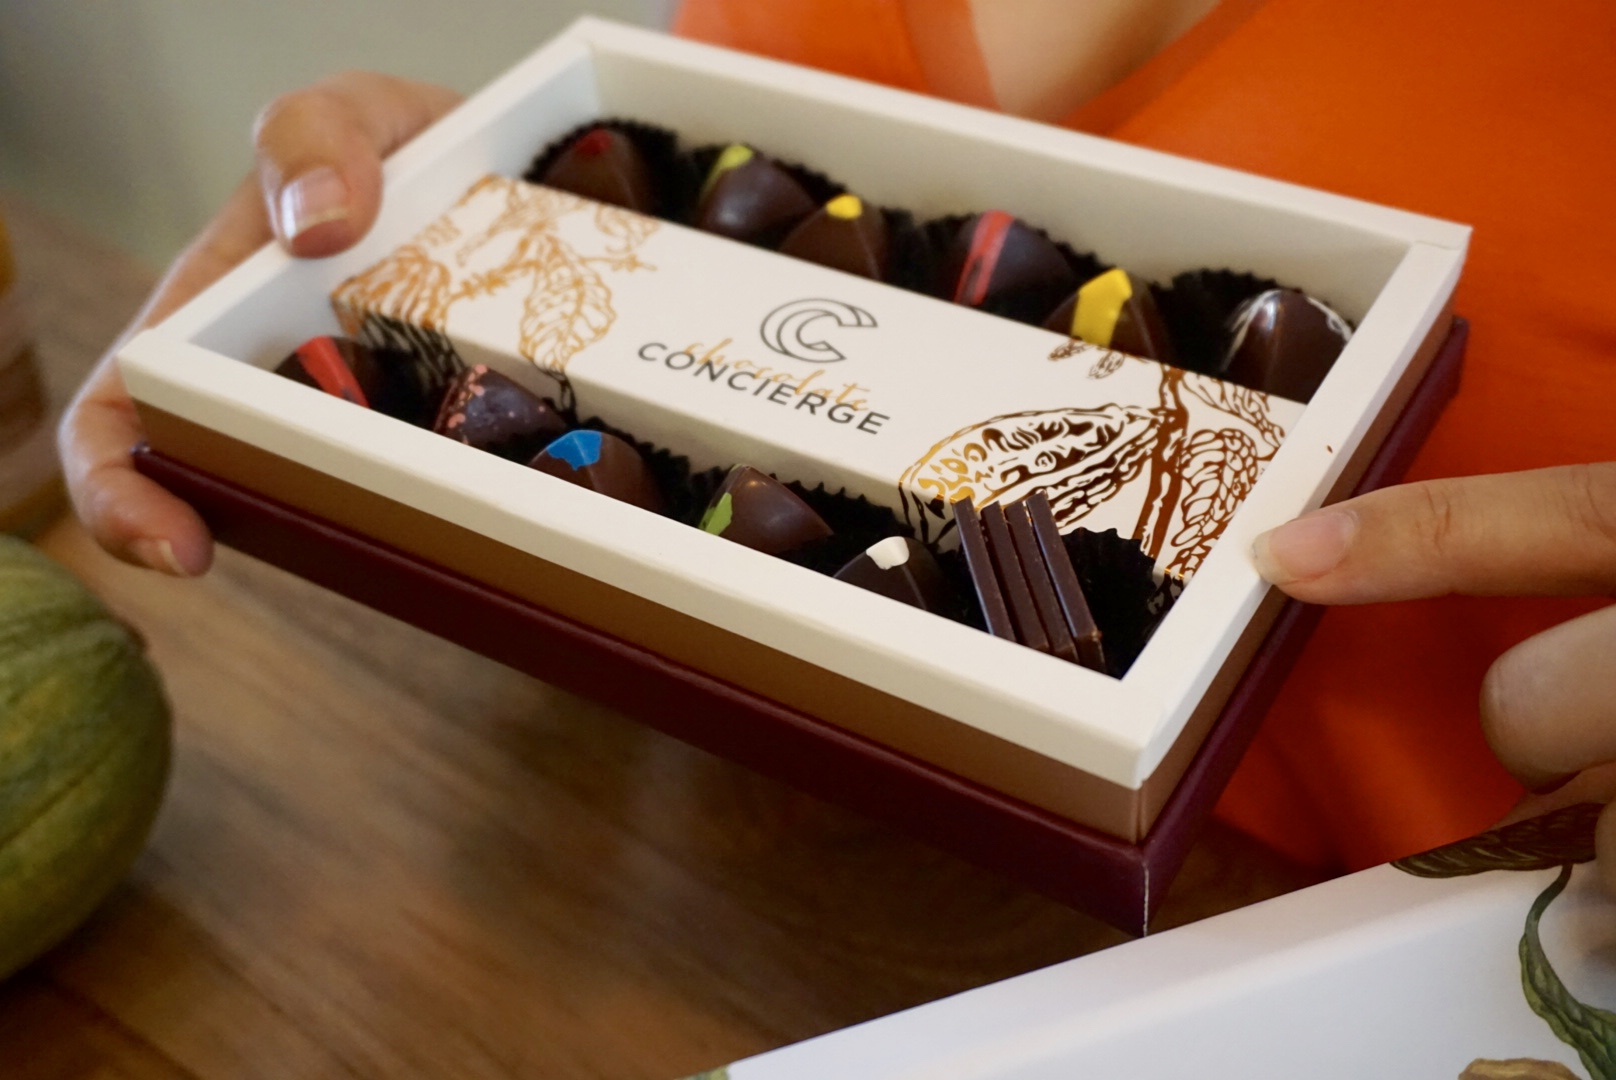 That copper foil packaging is enough to make a girl go ga-ga! One box to go please ;-)